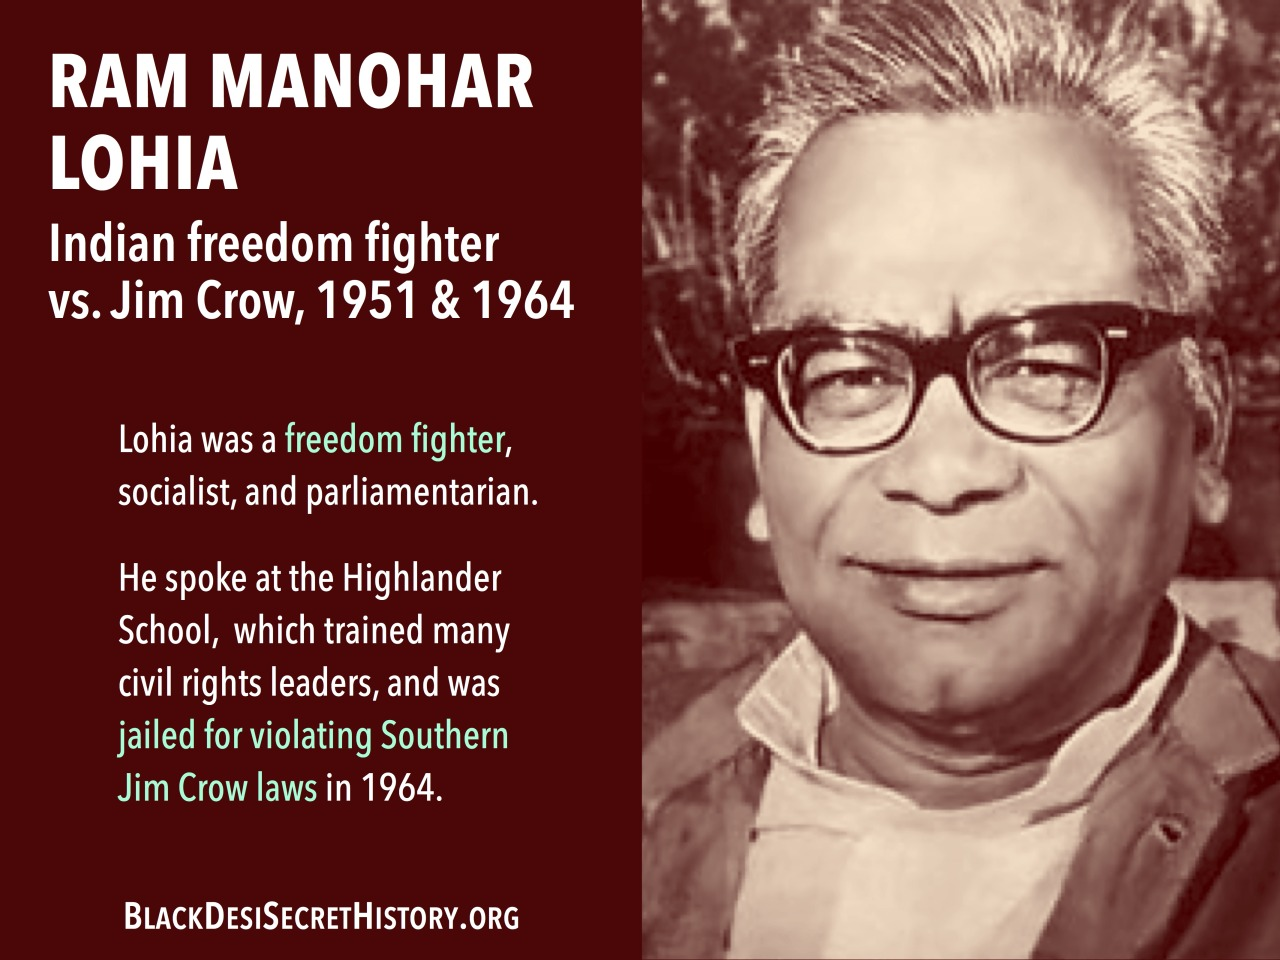 Ram Manohar Lohia was an Indian freedom fighter and member of parliament who went to jail